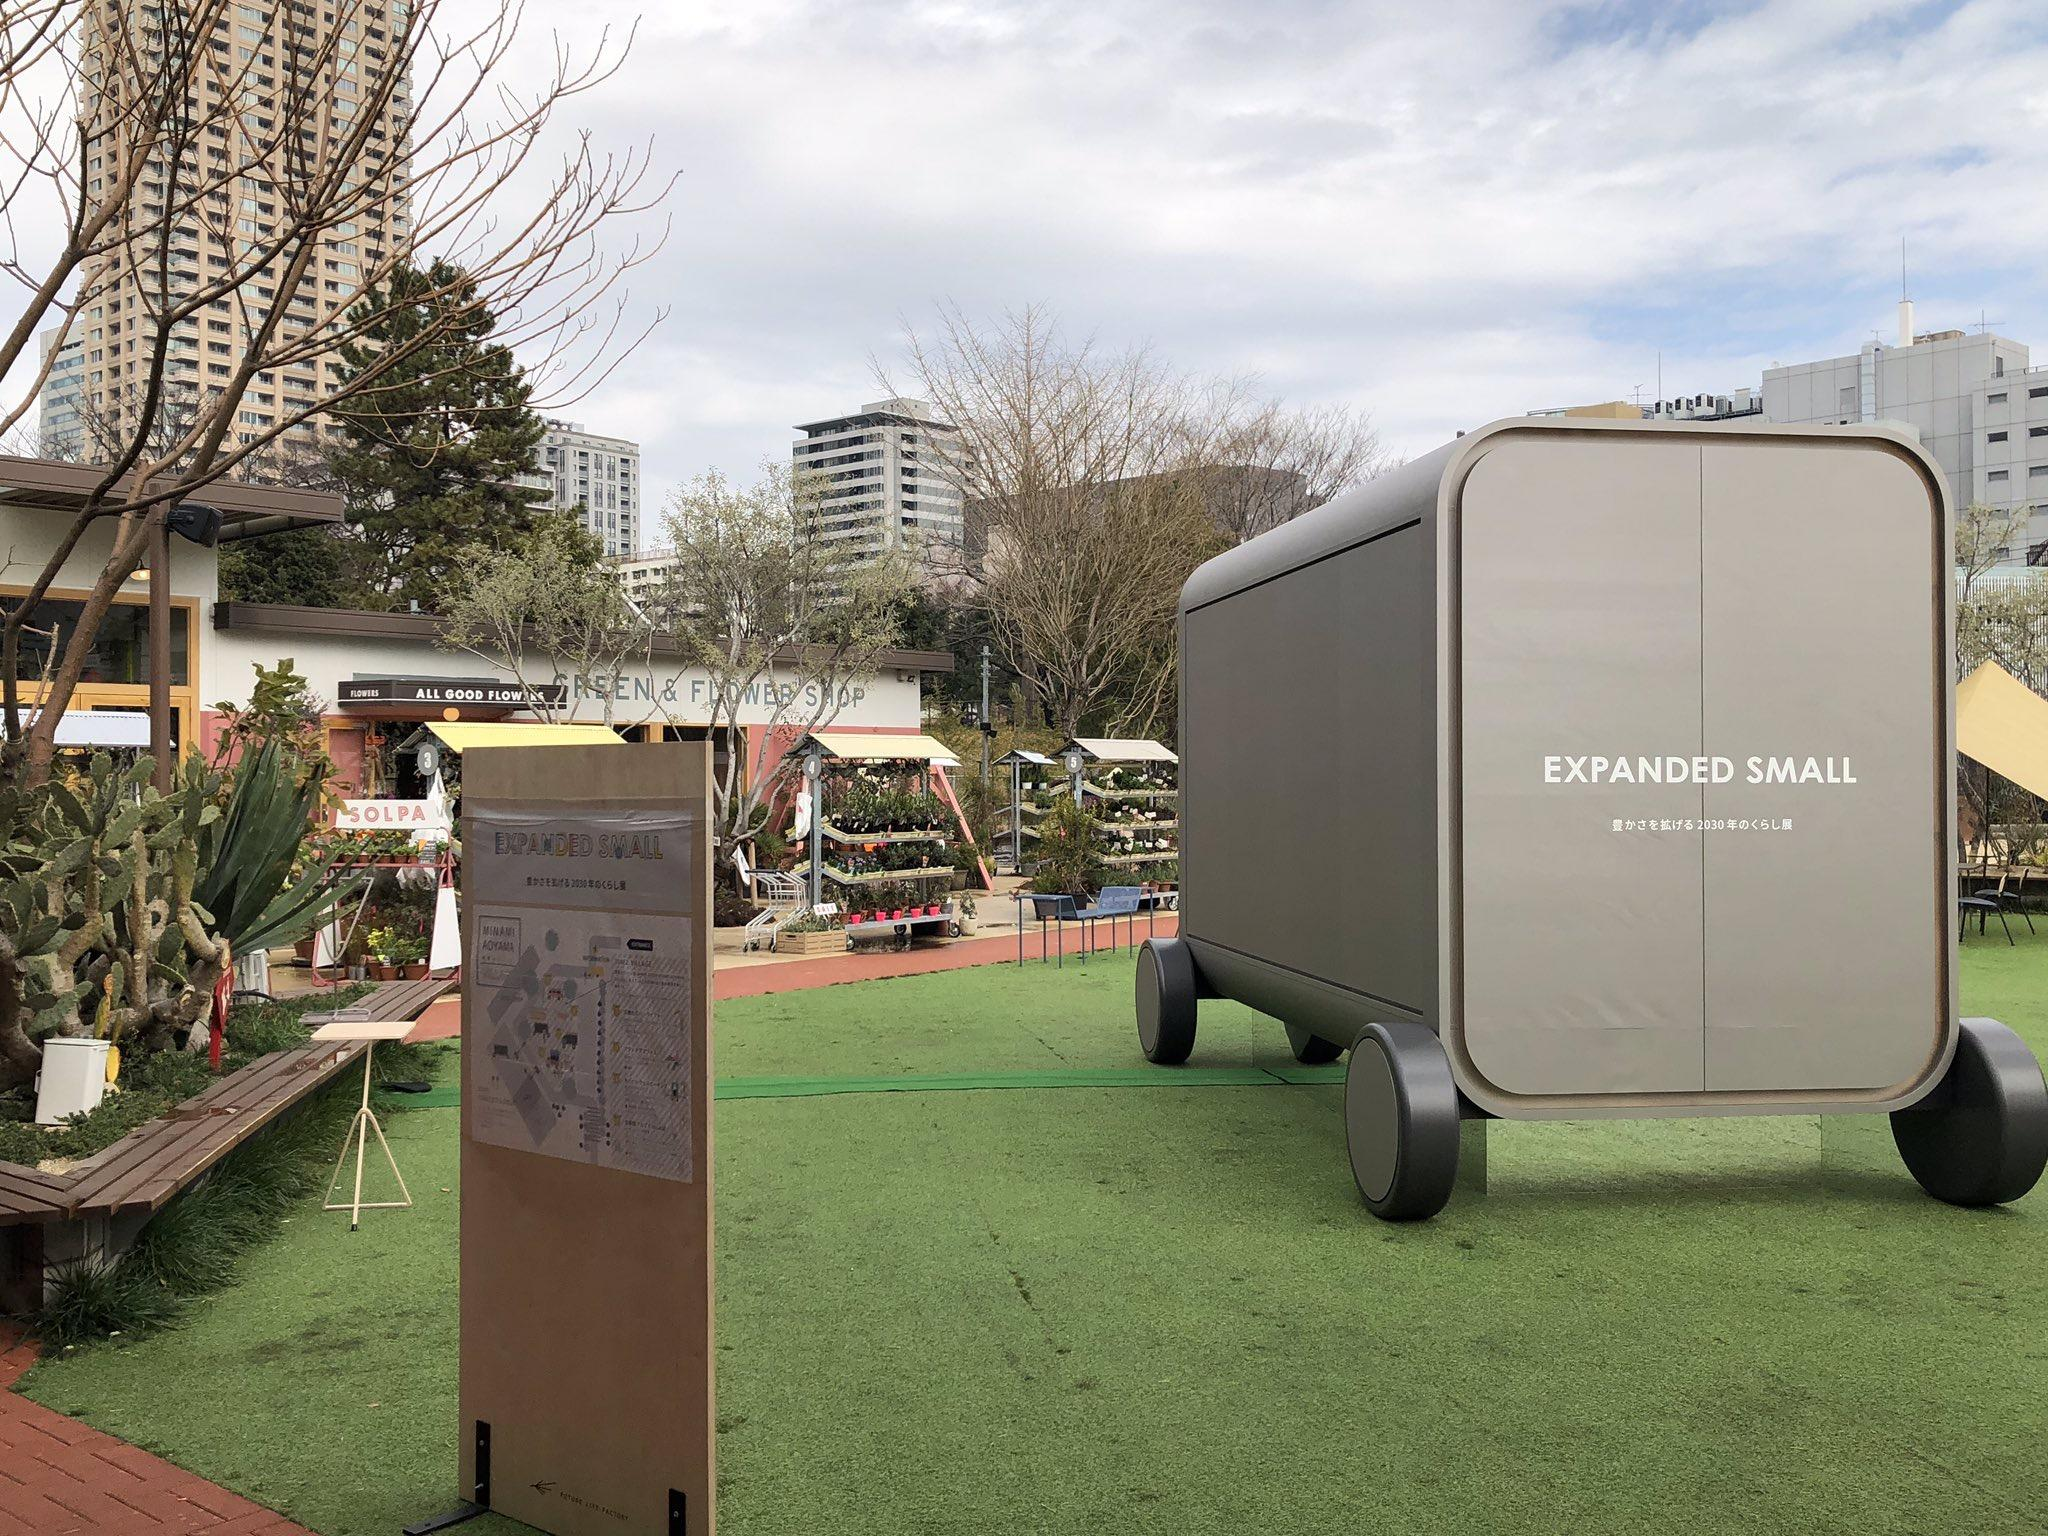 photo: Panasonic exhibited its EXSMALL prototype and the VILLAGE